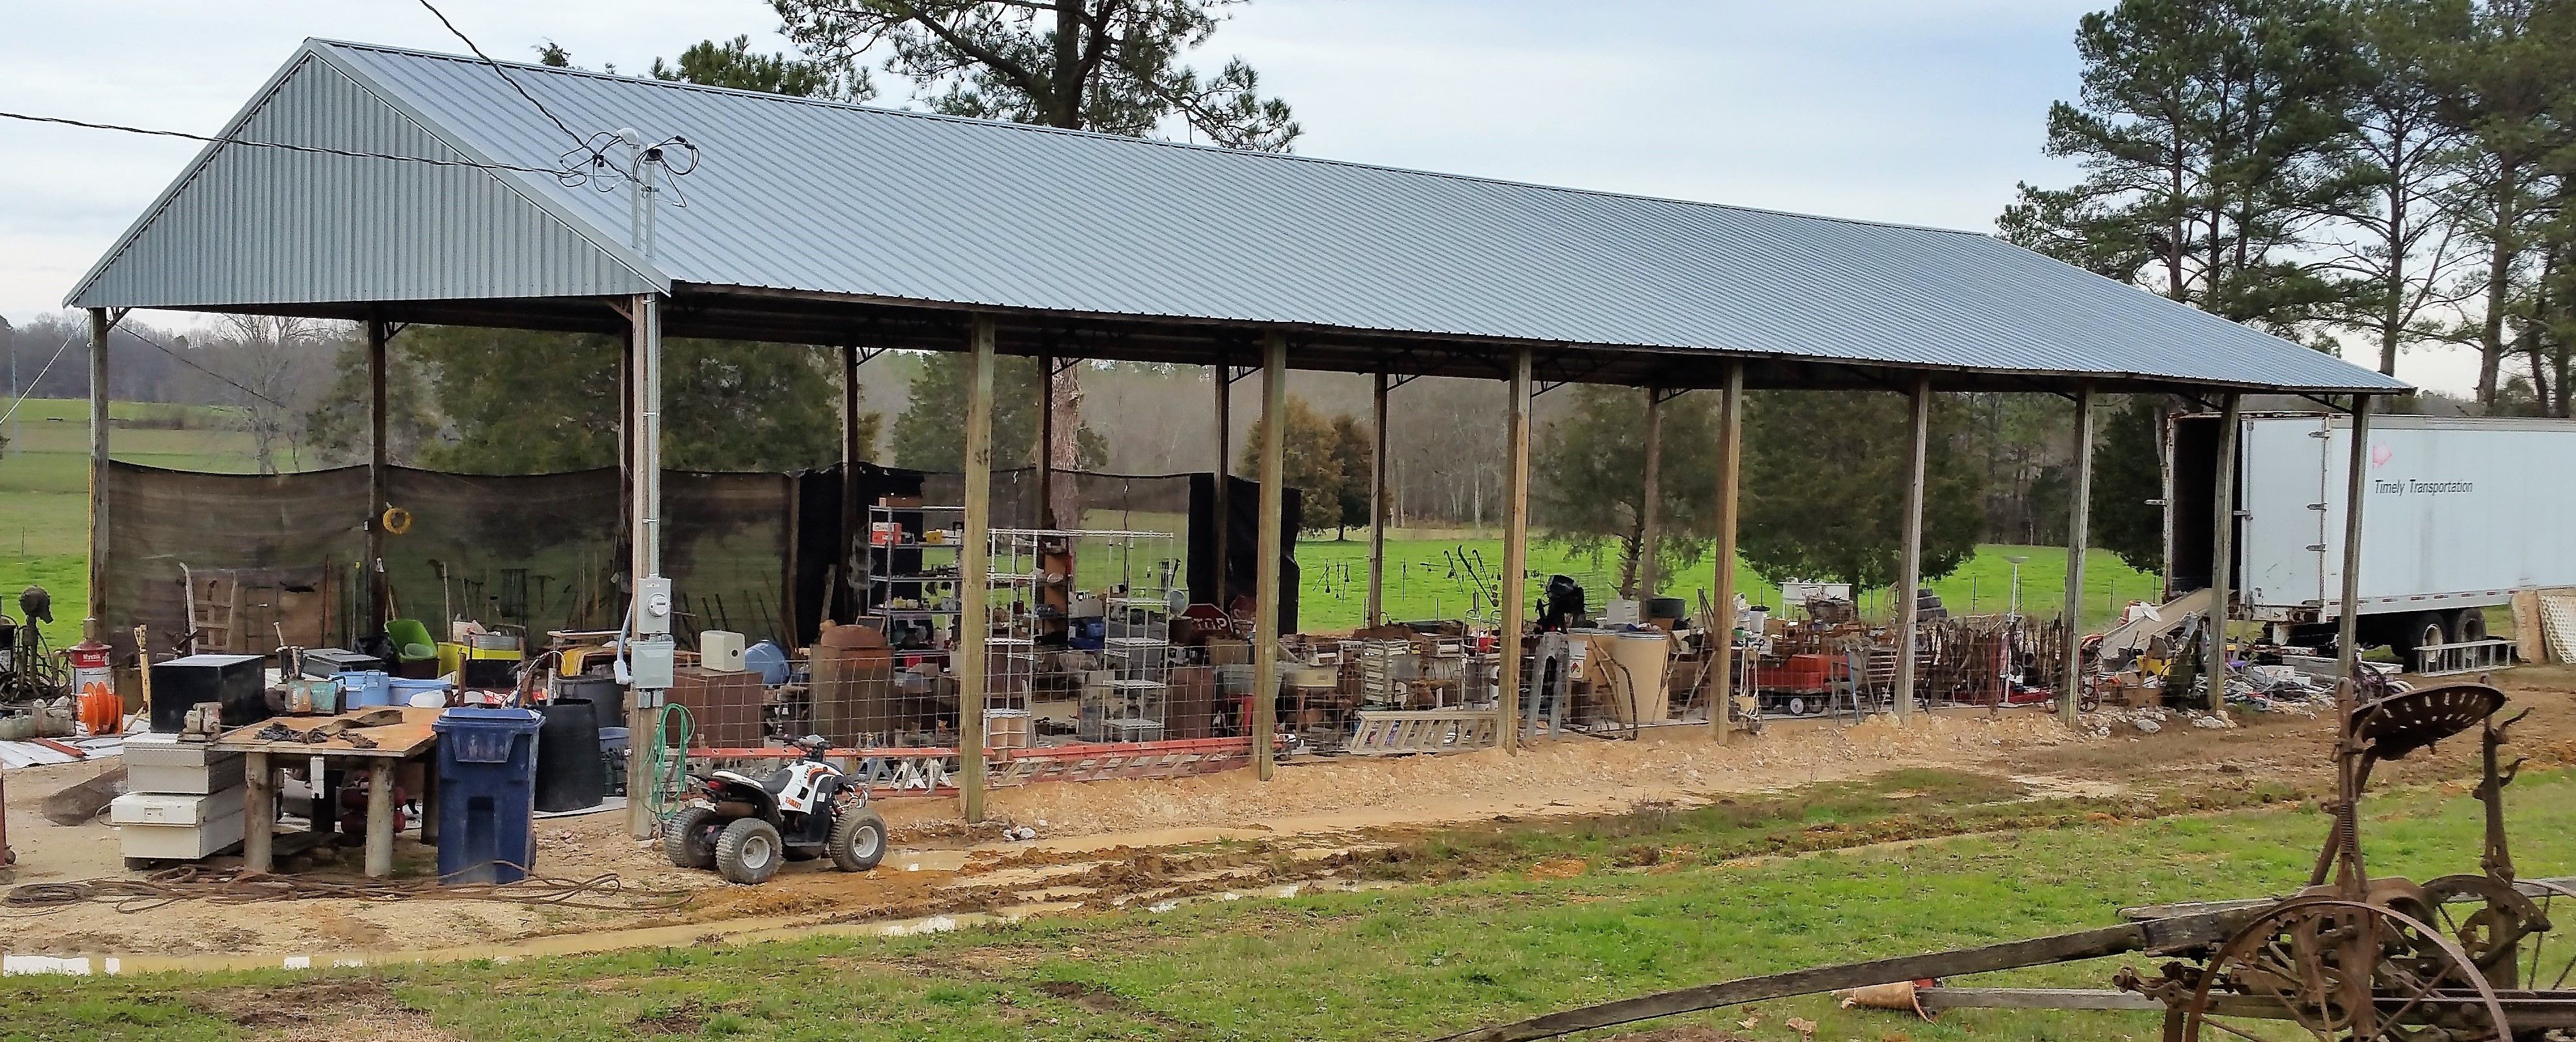 40' x 80' Pole Shed on Tract 8